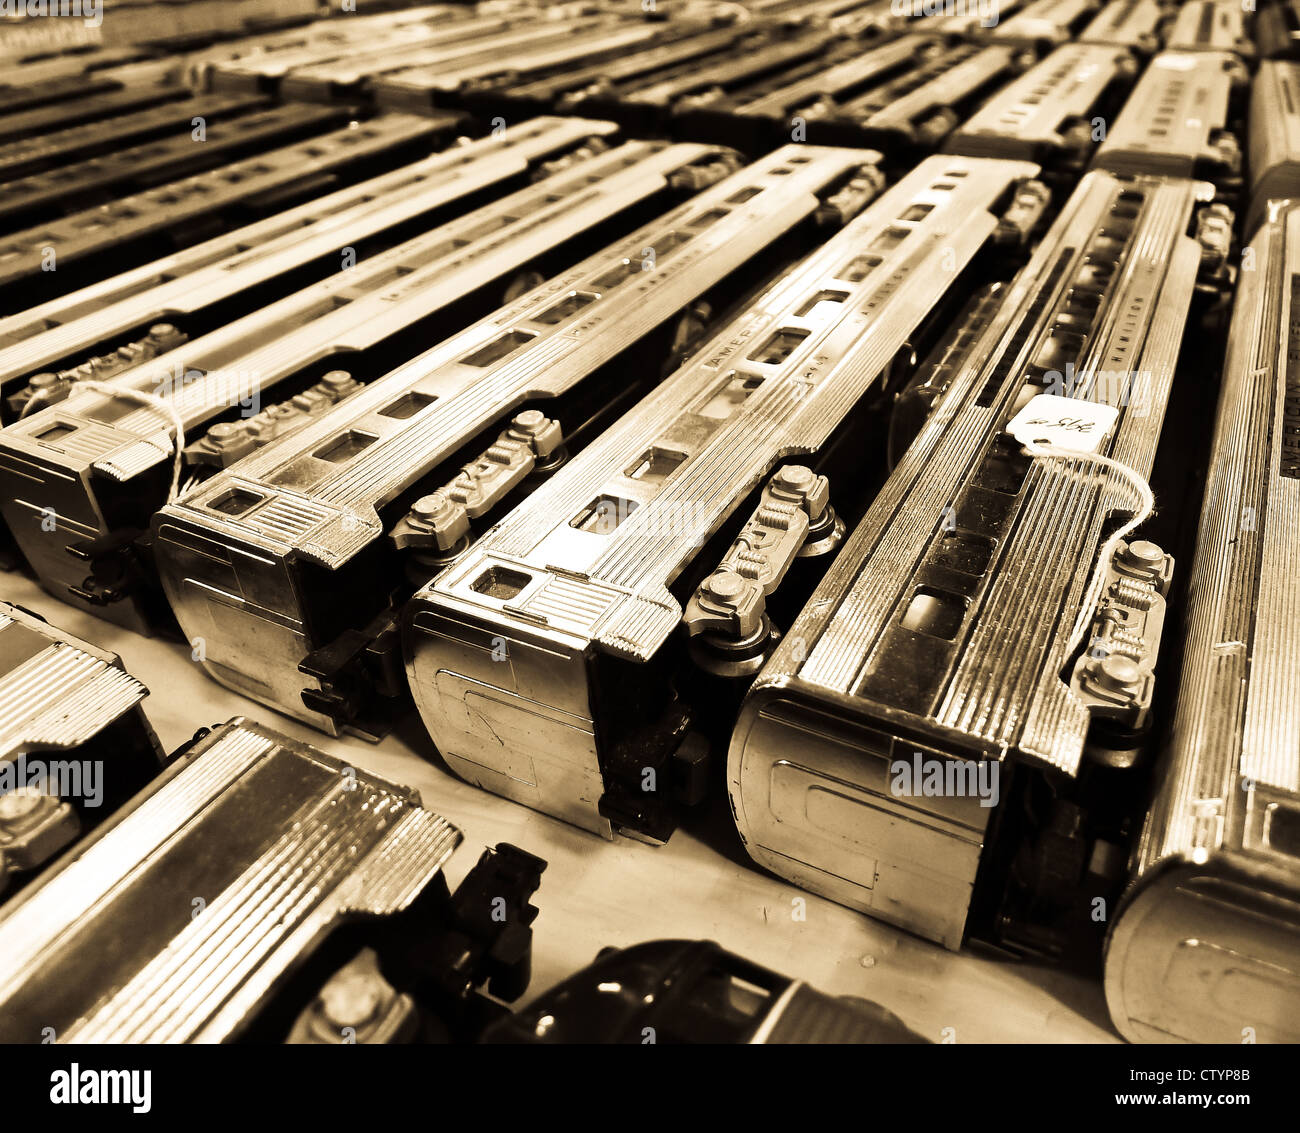 Old model railroad passenger train cars for sale at a flea market ...